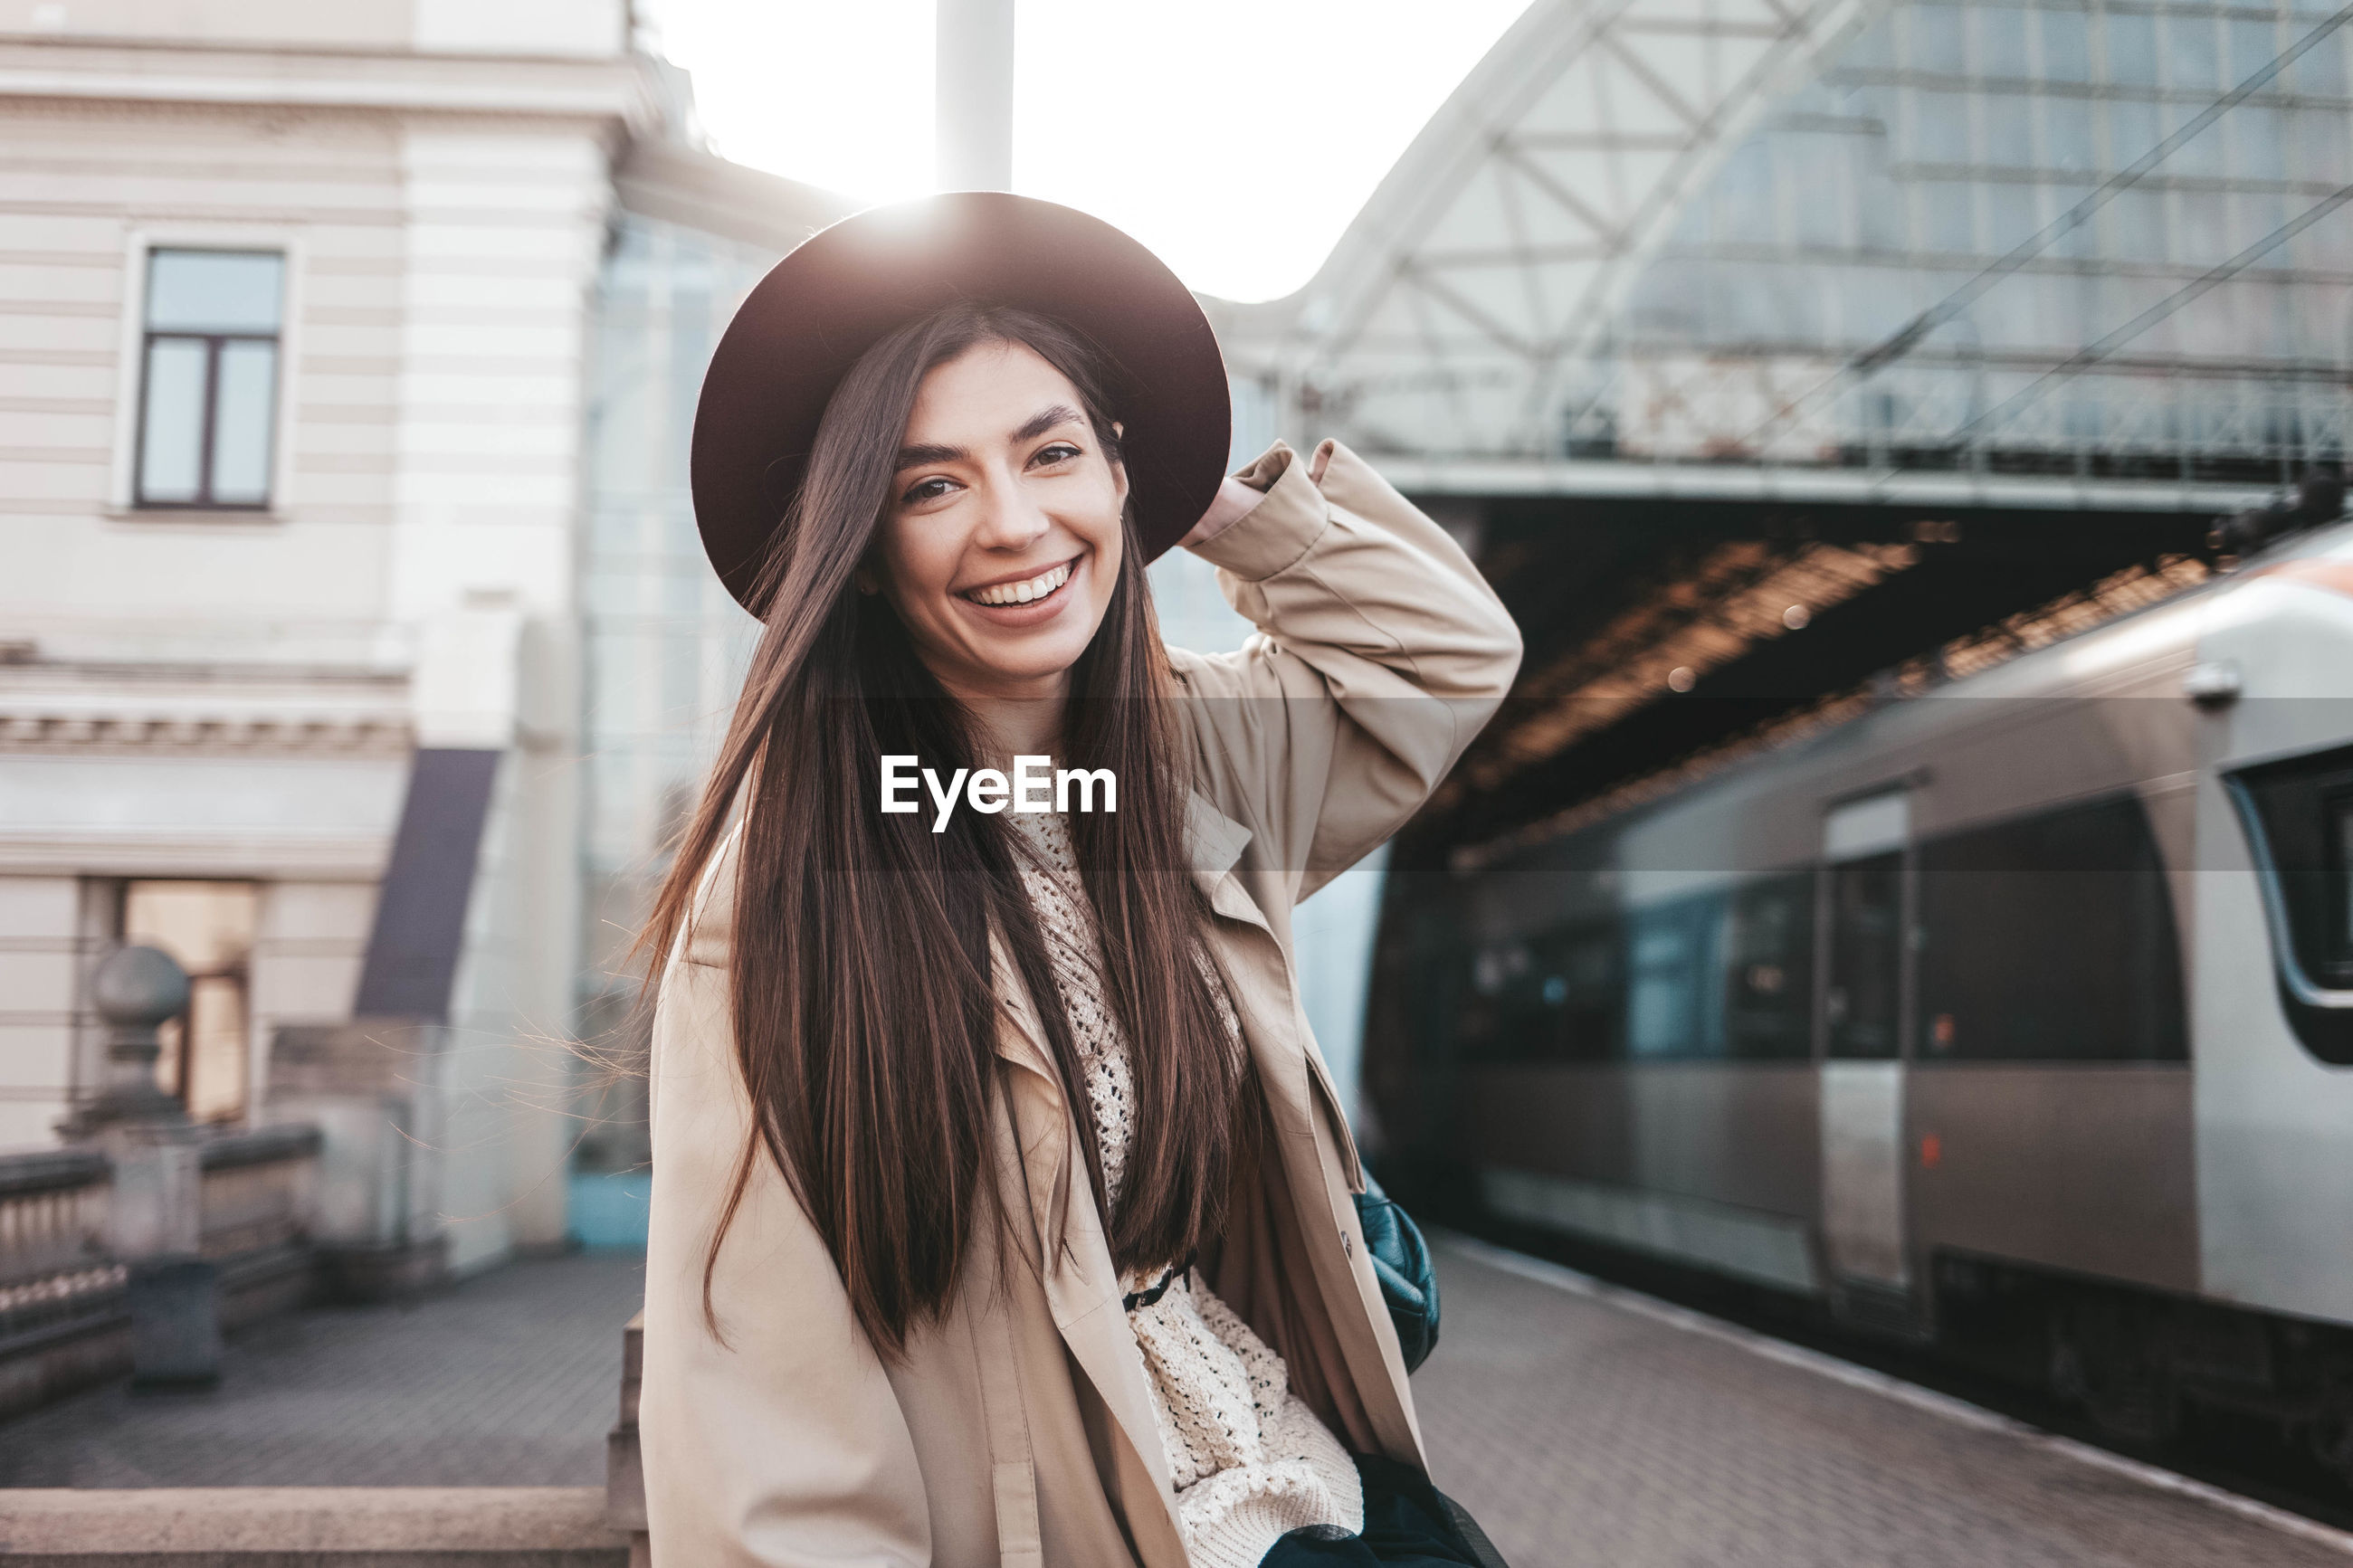 PORTRAIT OF BEAUTIFUL YOUNG WOMAN STANDING AT RAILROAD STATION